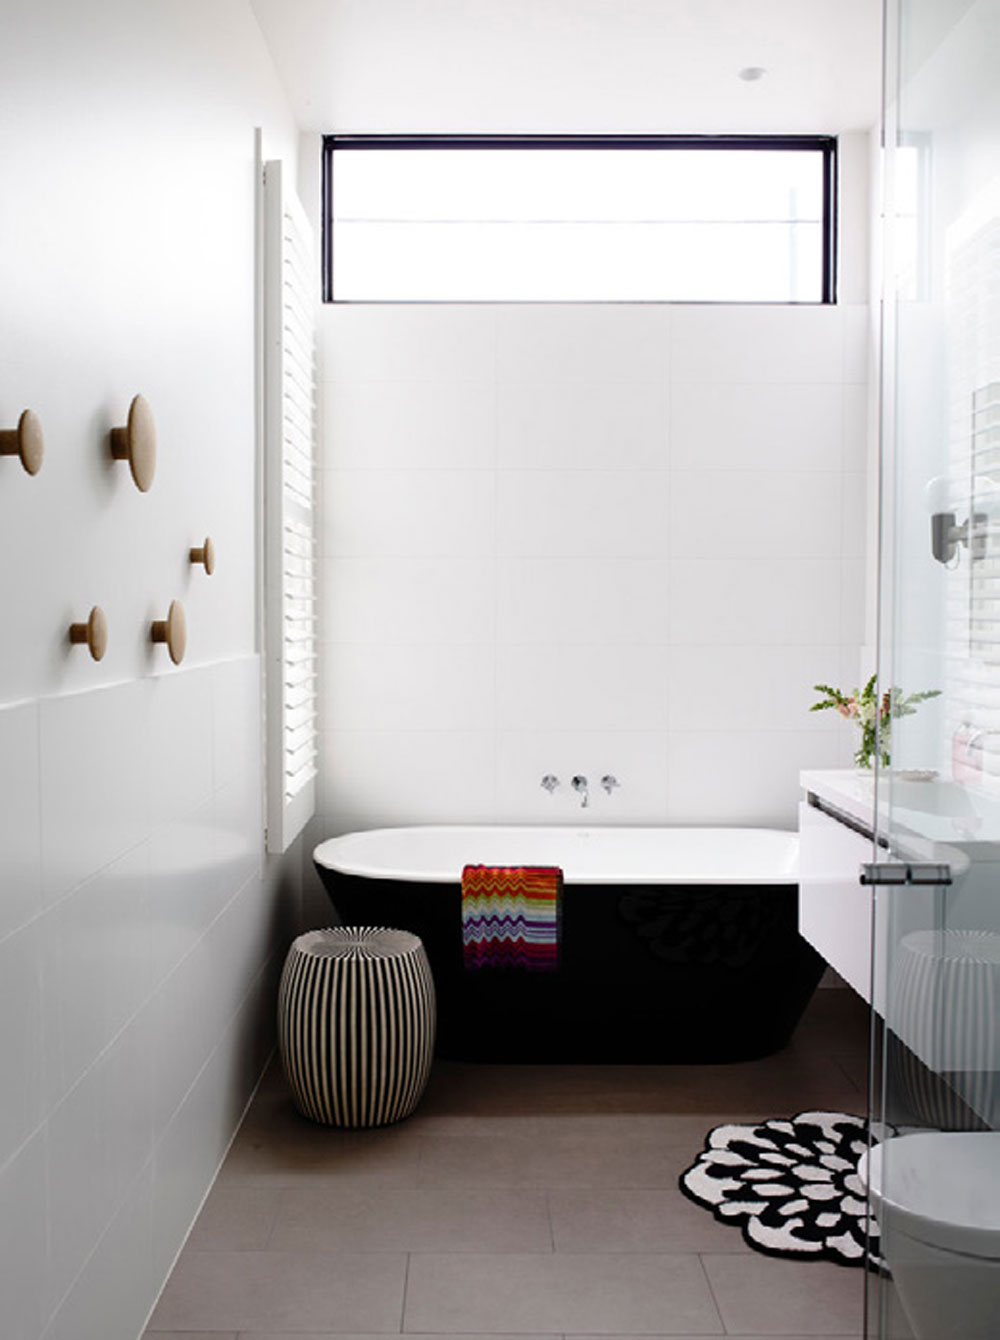 Designing A Small Bathroom - Ideas And Tips